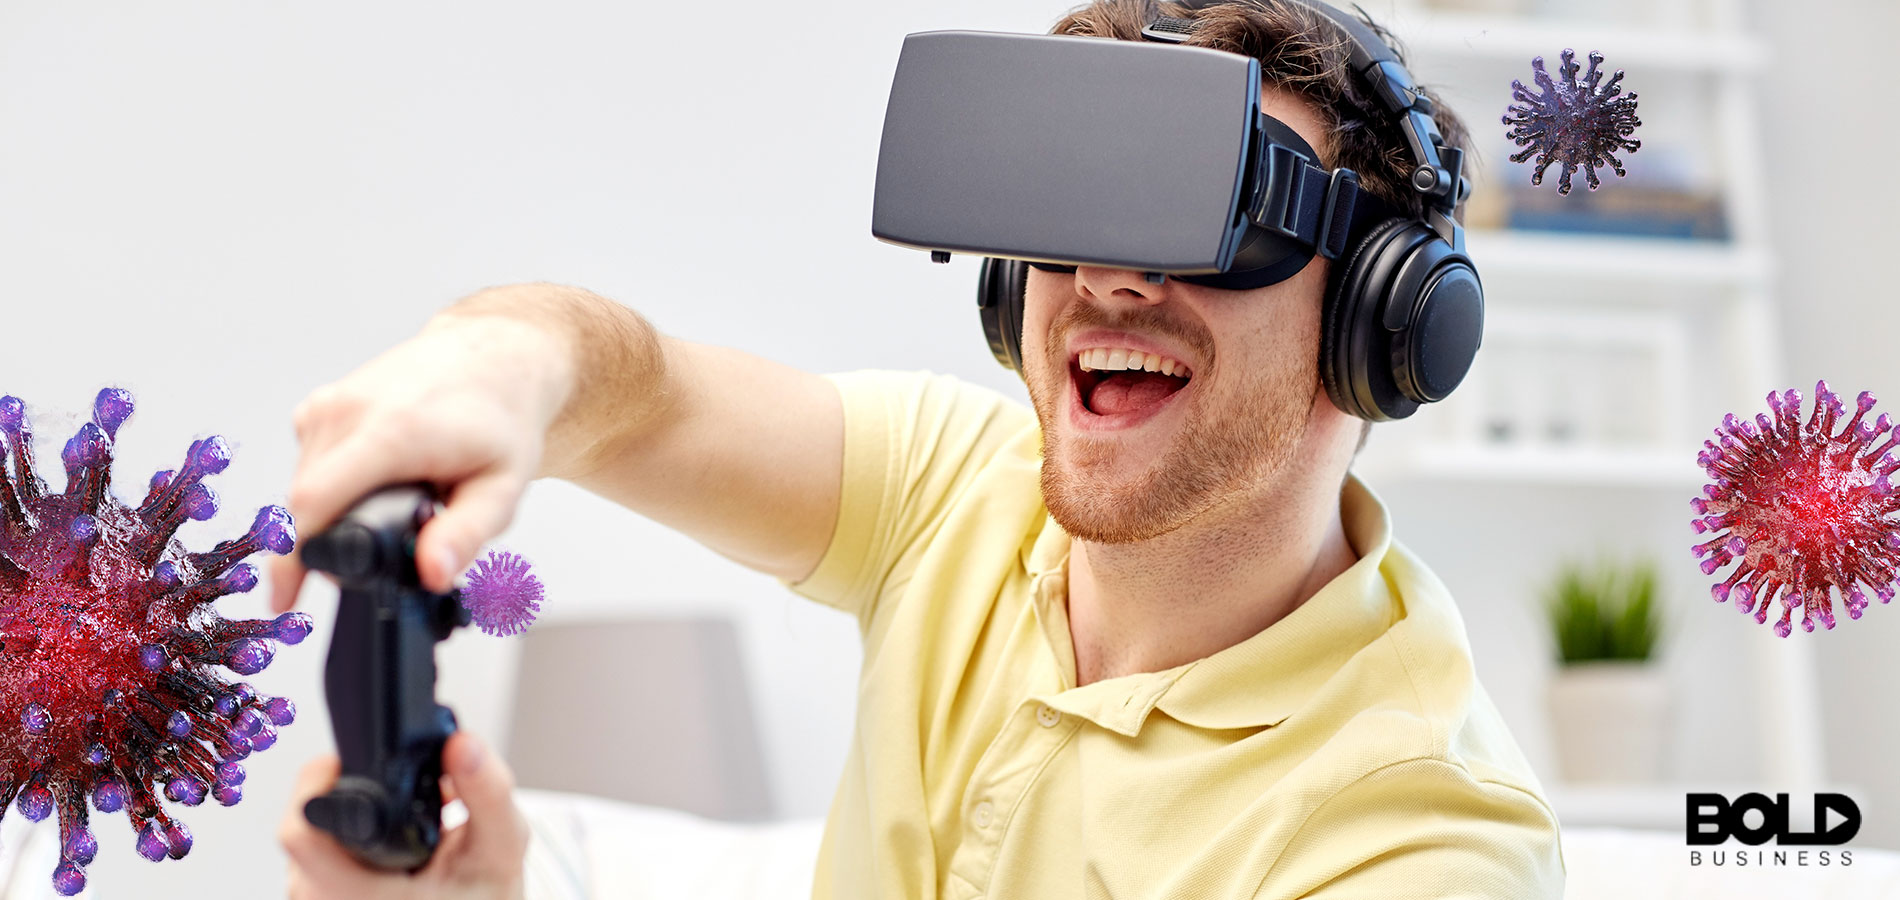 Some dude playing a virtual game in VR goggles